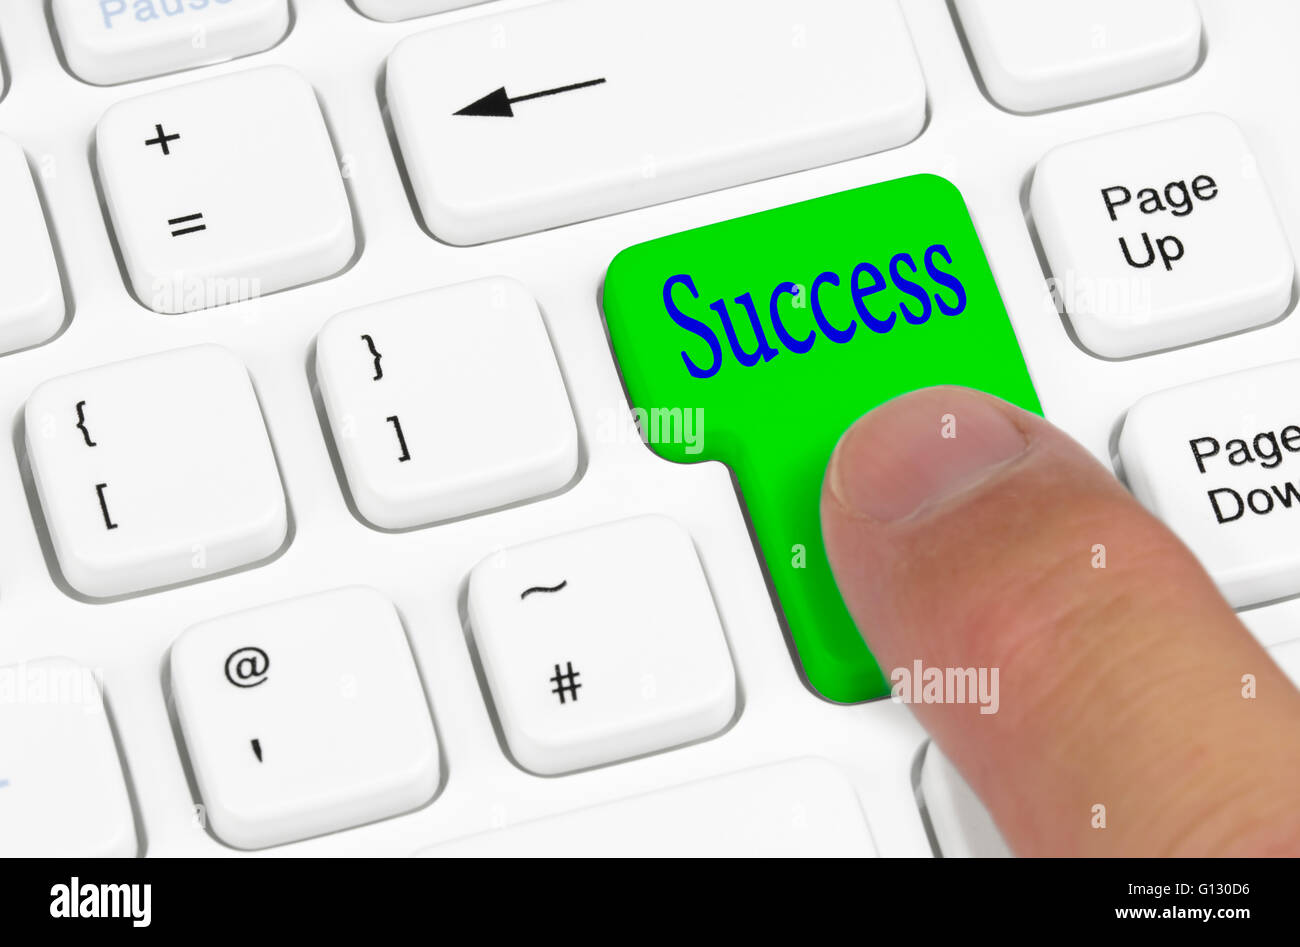 Success concept. Pressing the Success button on a white computer keyboard. - Stock Image